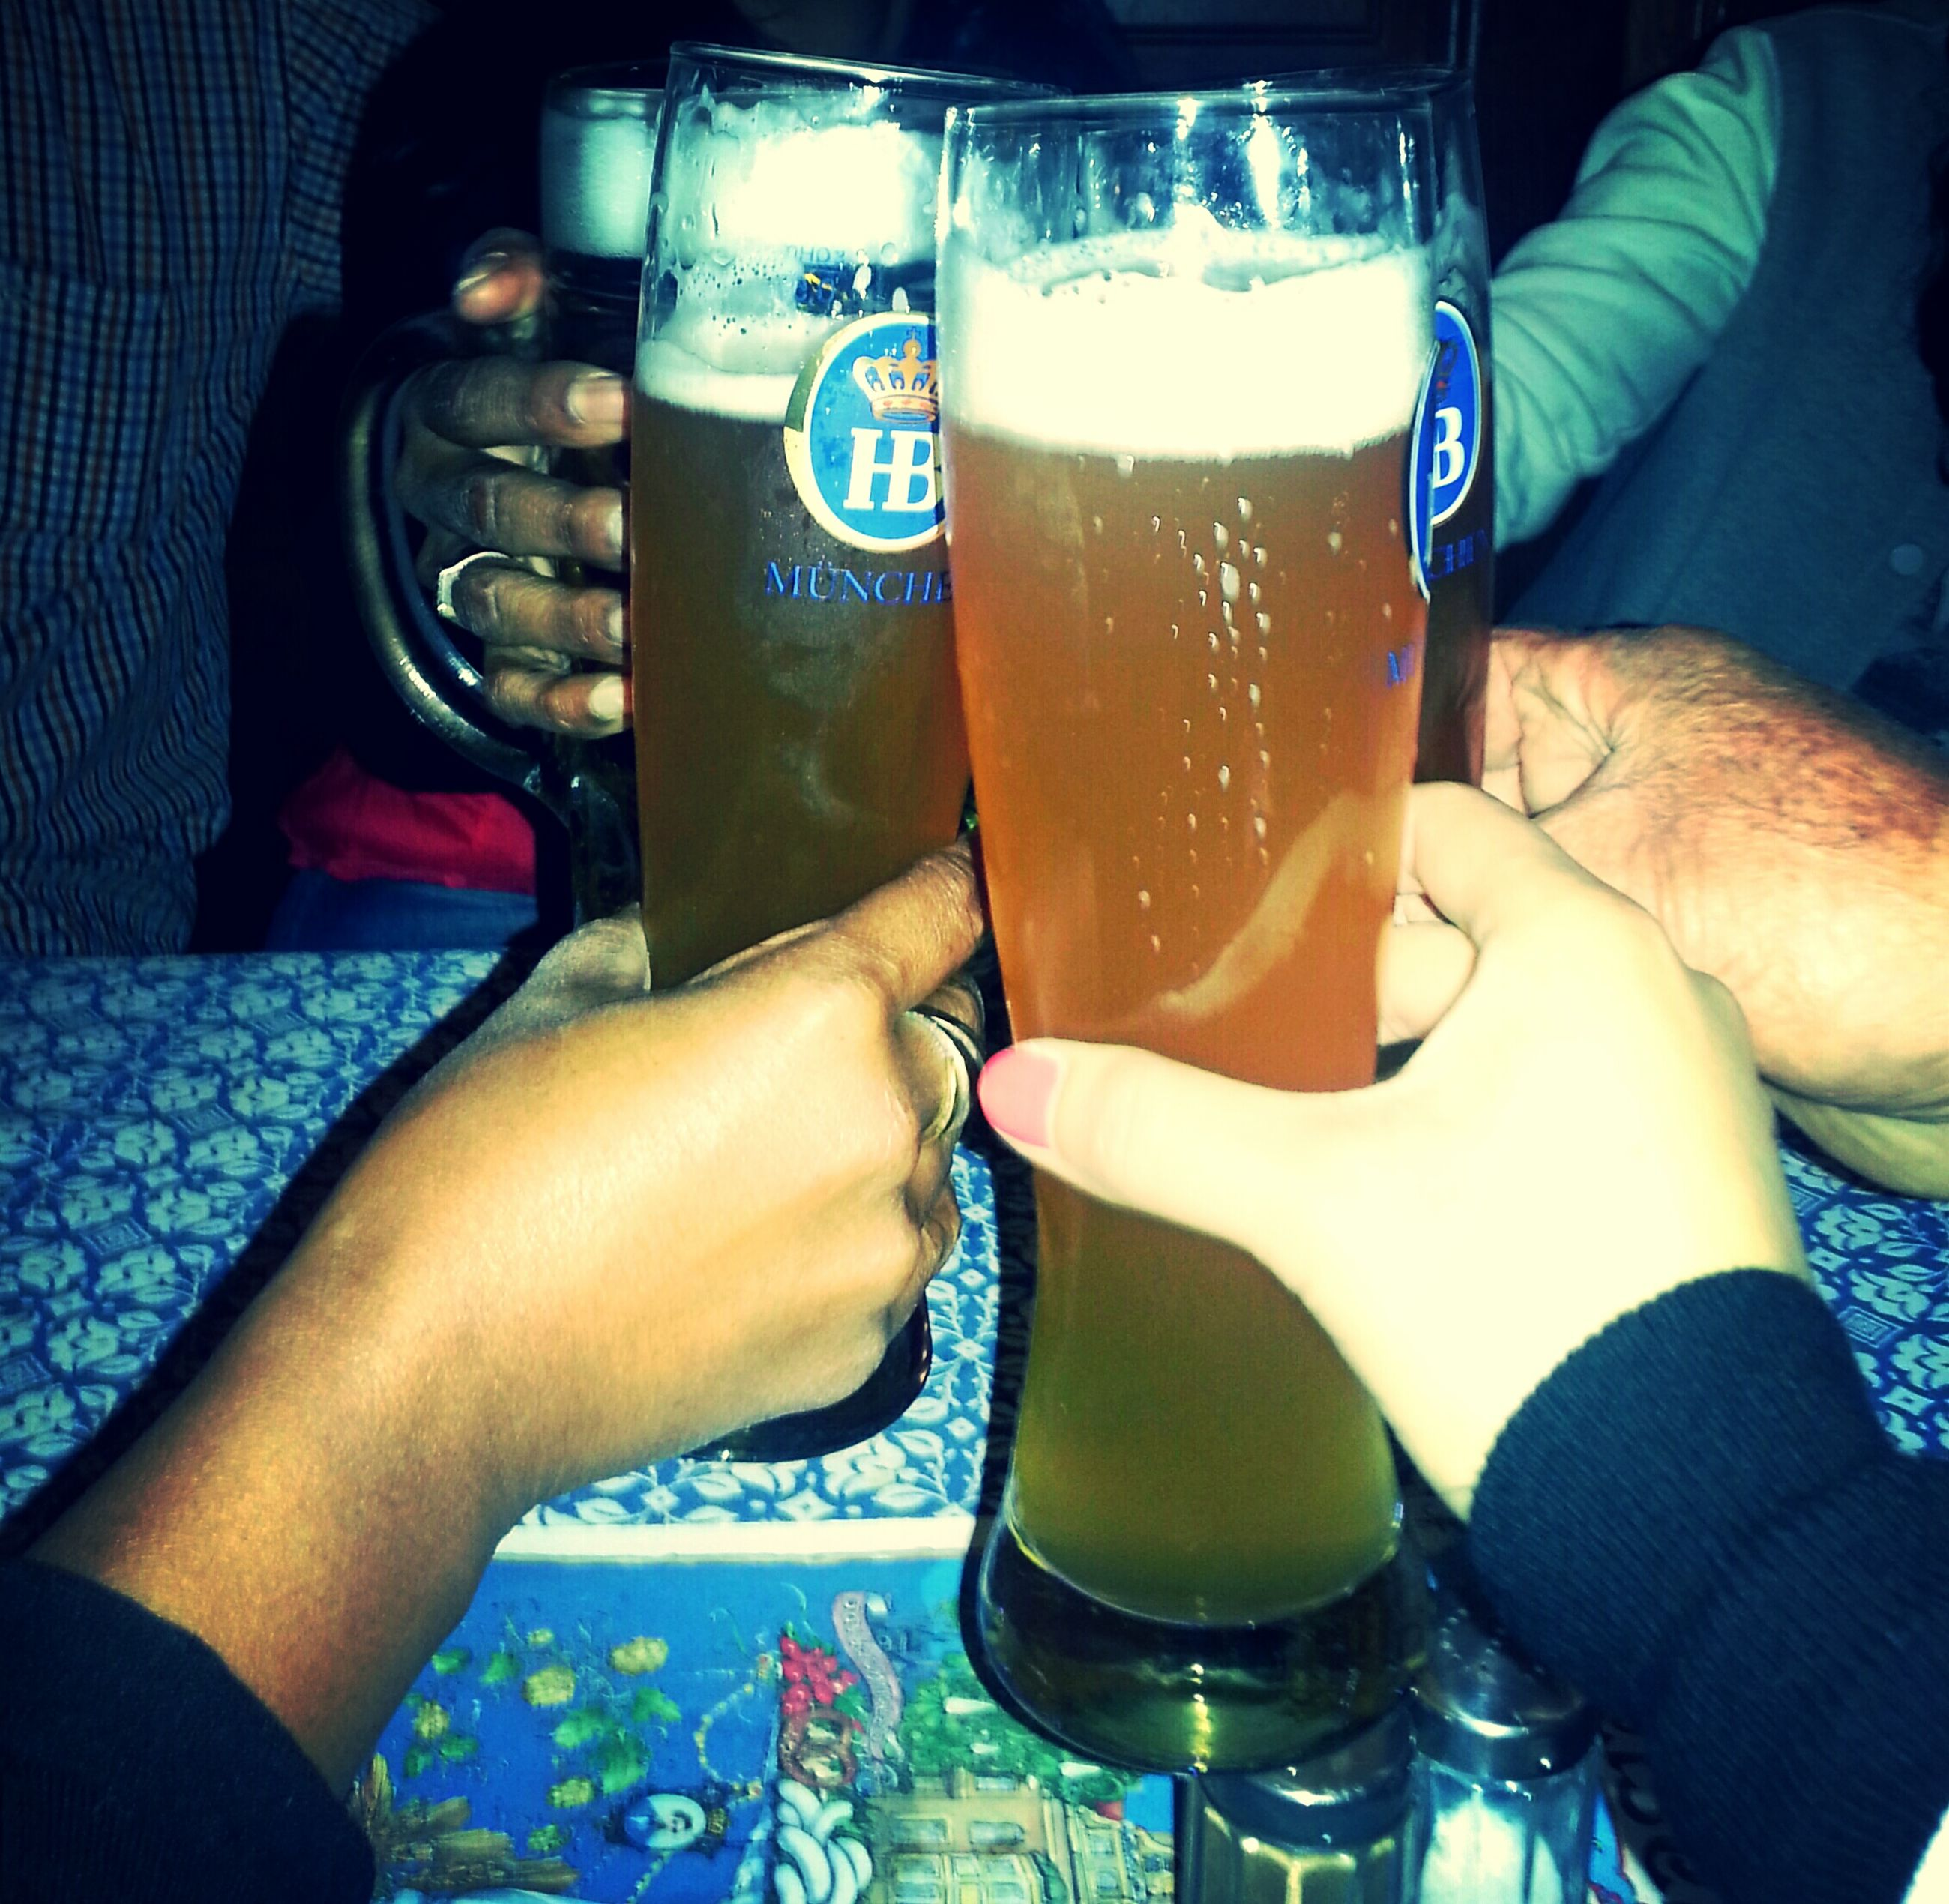 drink, indoors, lifestyles, food and drink, men, refreshment, leisure activity, person, holding, table, sitting, drinking glass, togetherness, friendship, part of